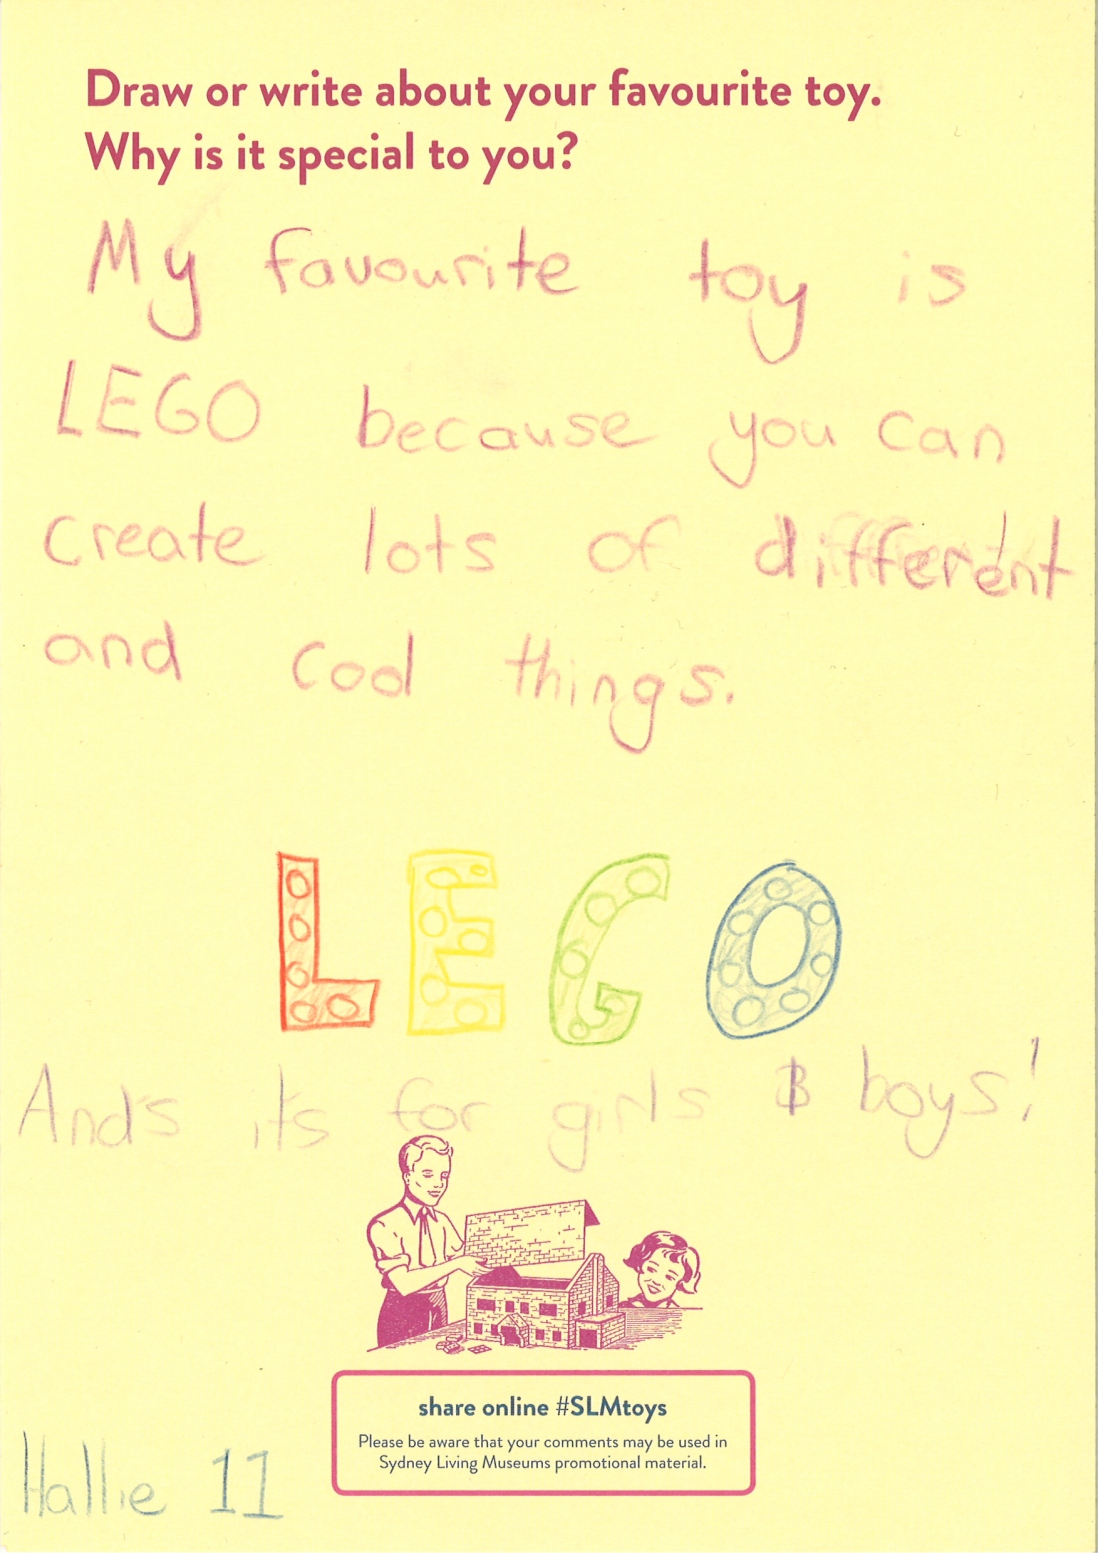 A child describes why they like Lego